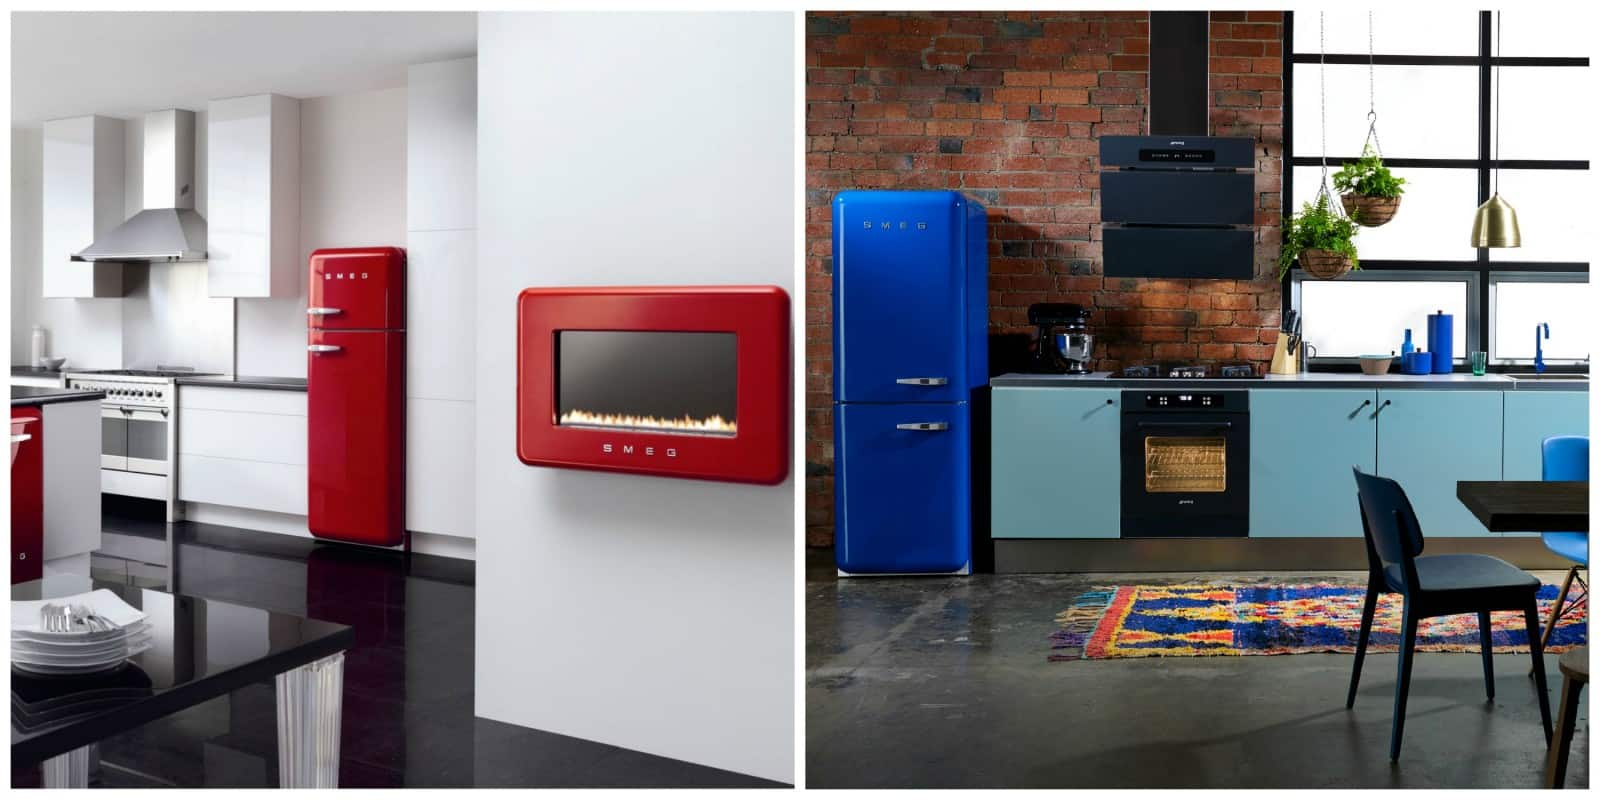 small kitchen appliances are available from electrical and appliance